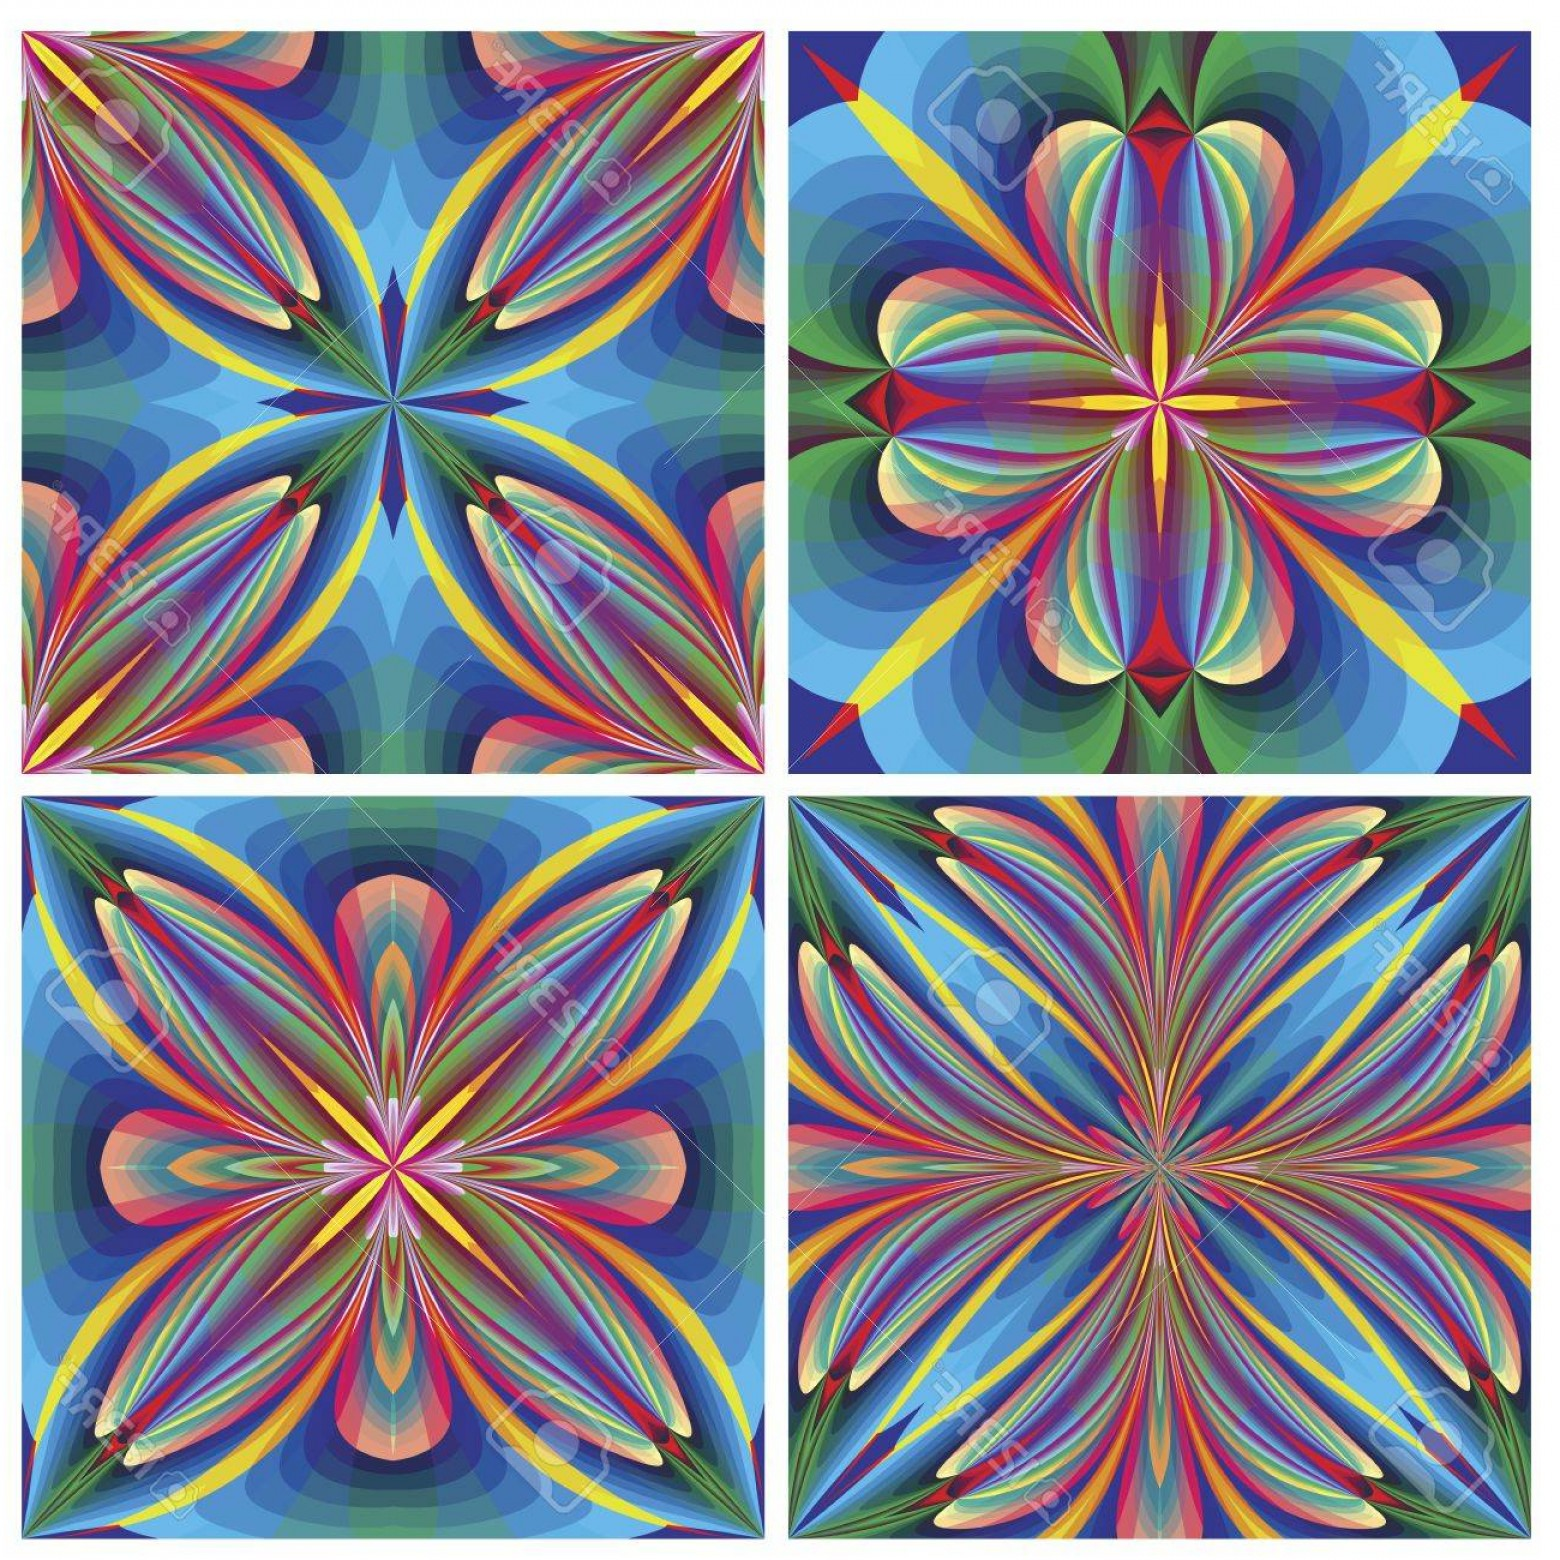 Art Deco Tile Vector Design: Photoset Of Seamless Art Deco Tiles With Historic Motifs In Vivid And Bright Colors For Tapestry Wall Des